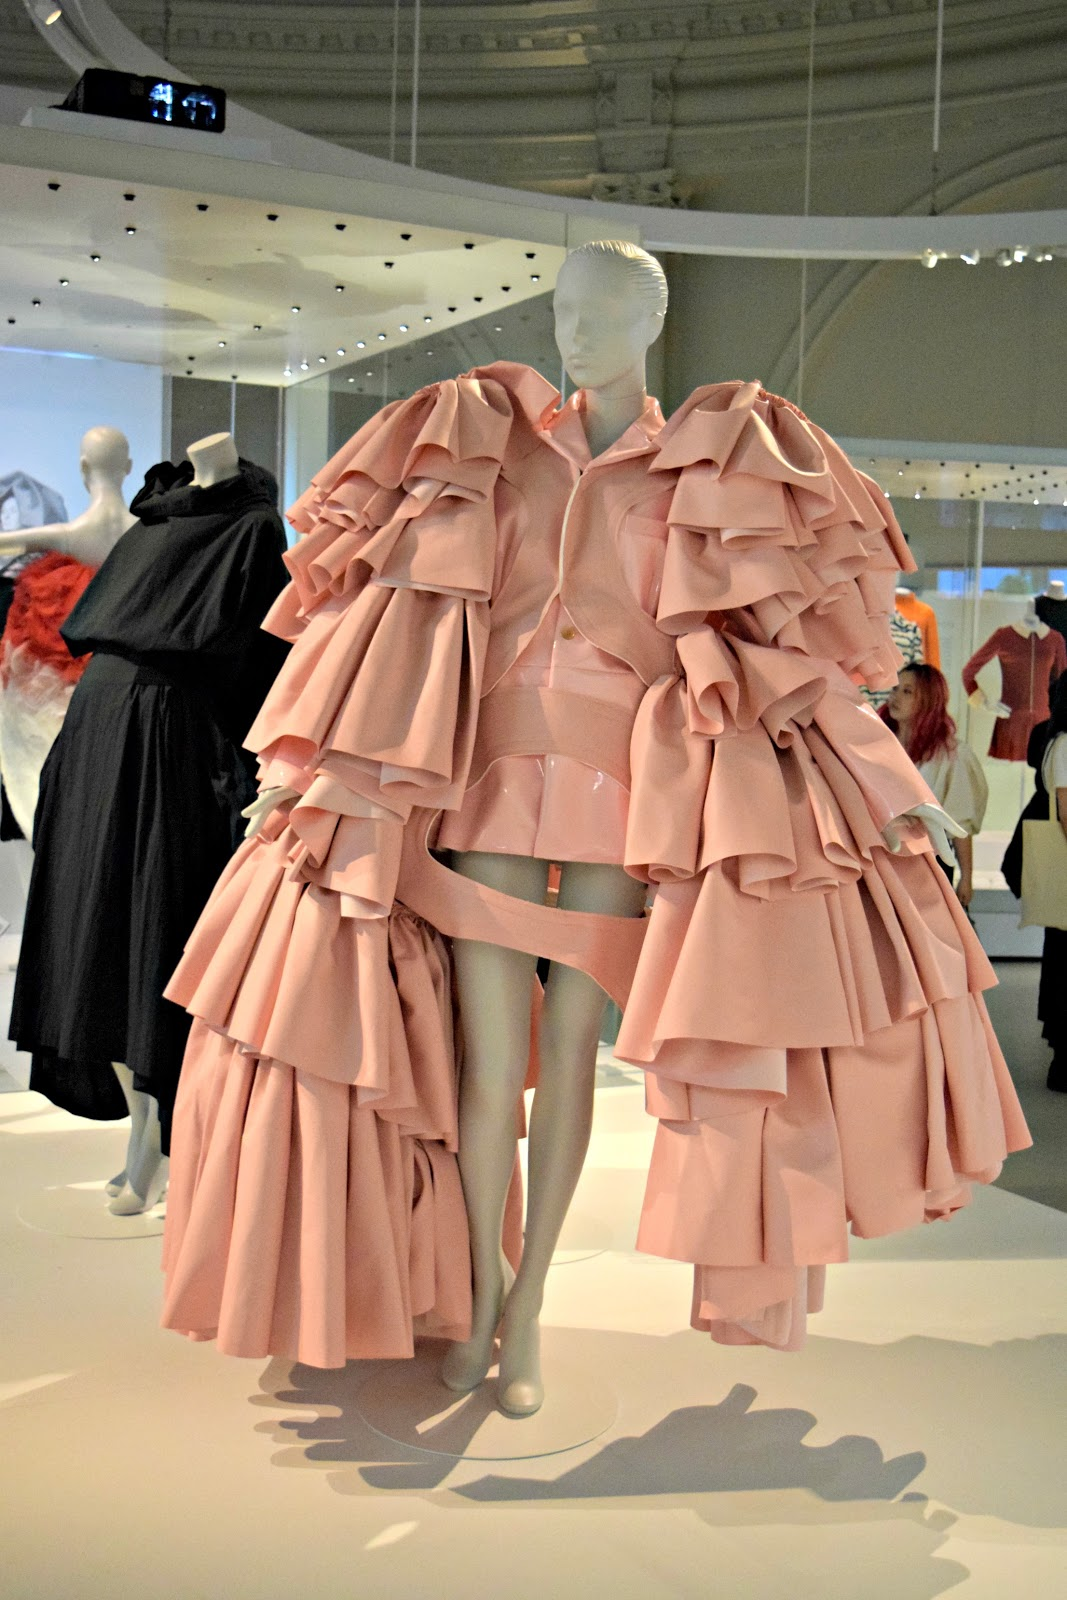 fashion exhibition london balenciaga influence